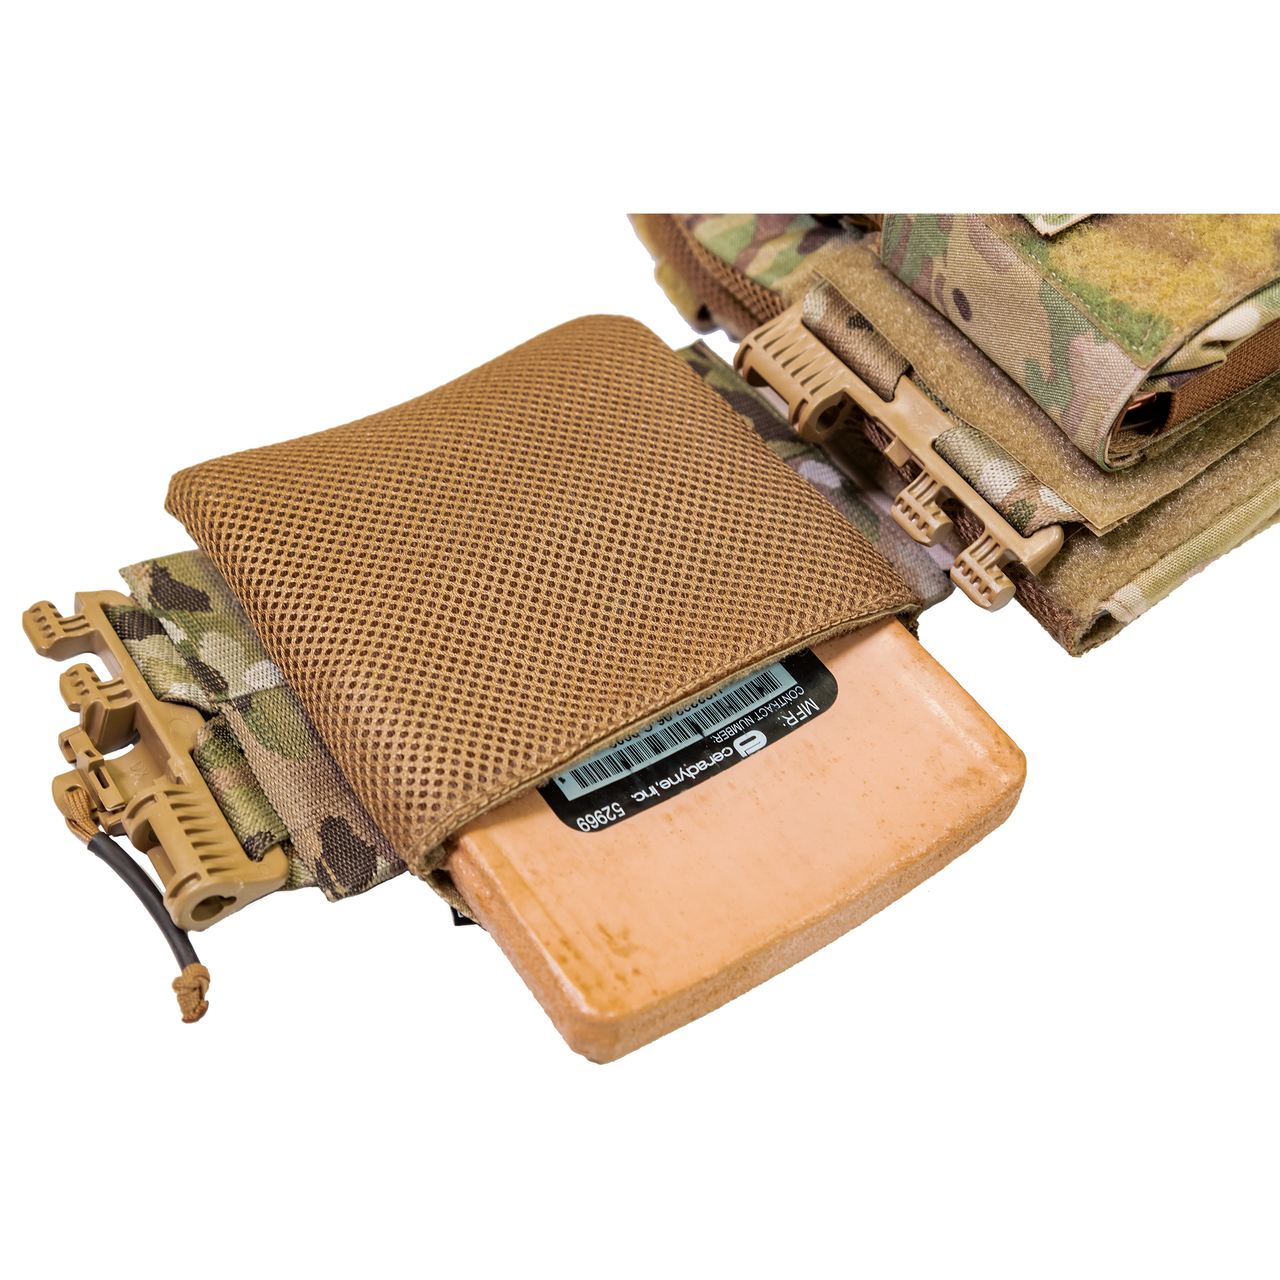 If you wear body armor and have to include side plates, you may find these new side plate bags comfortable.